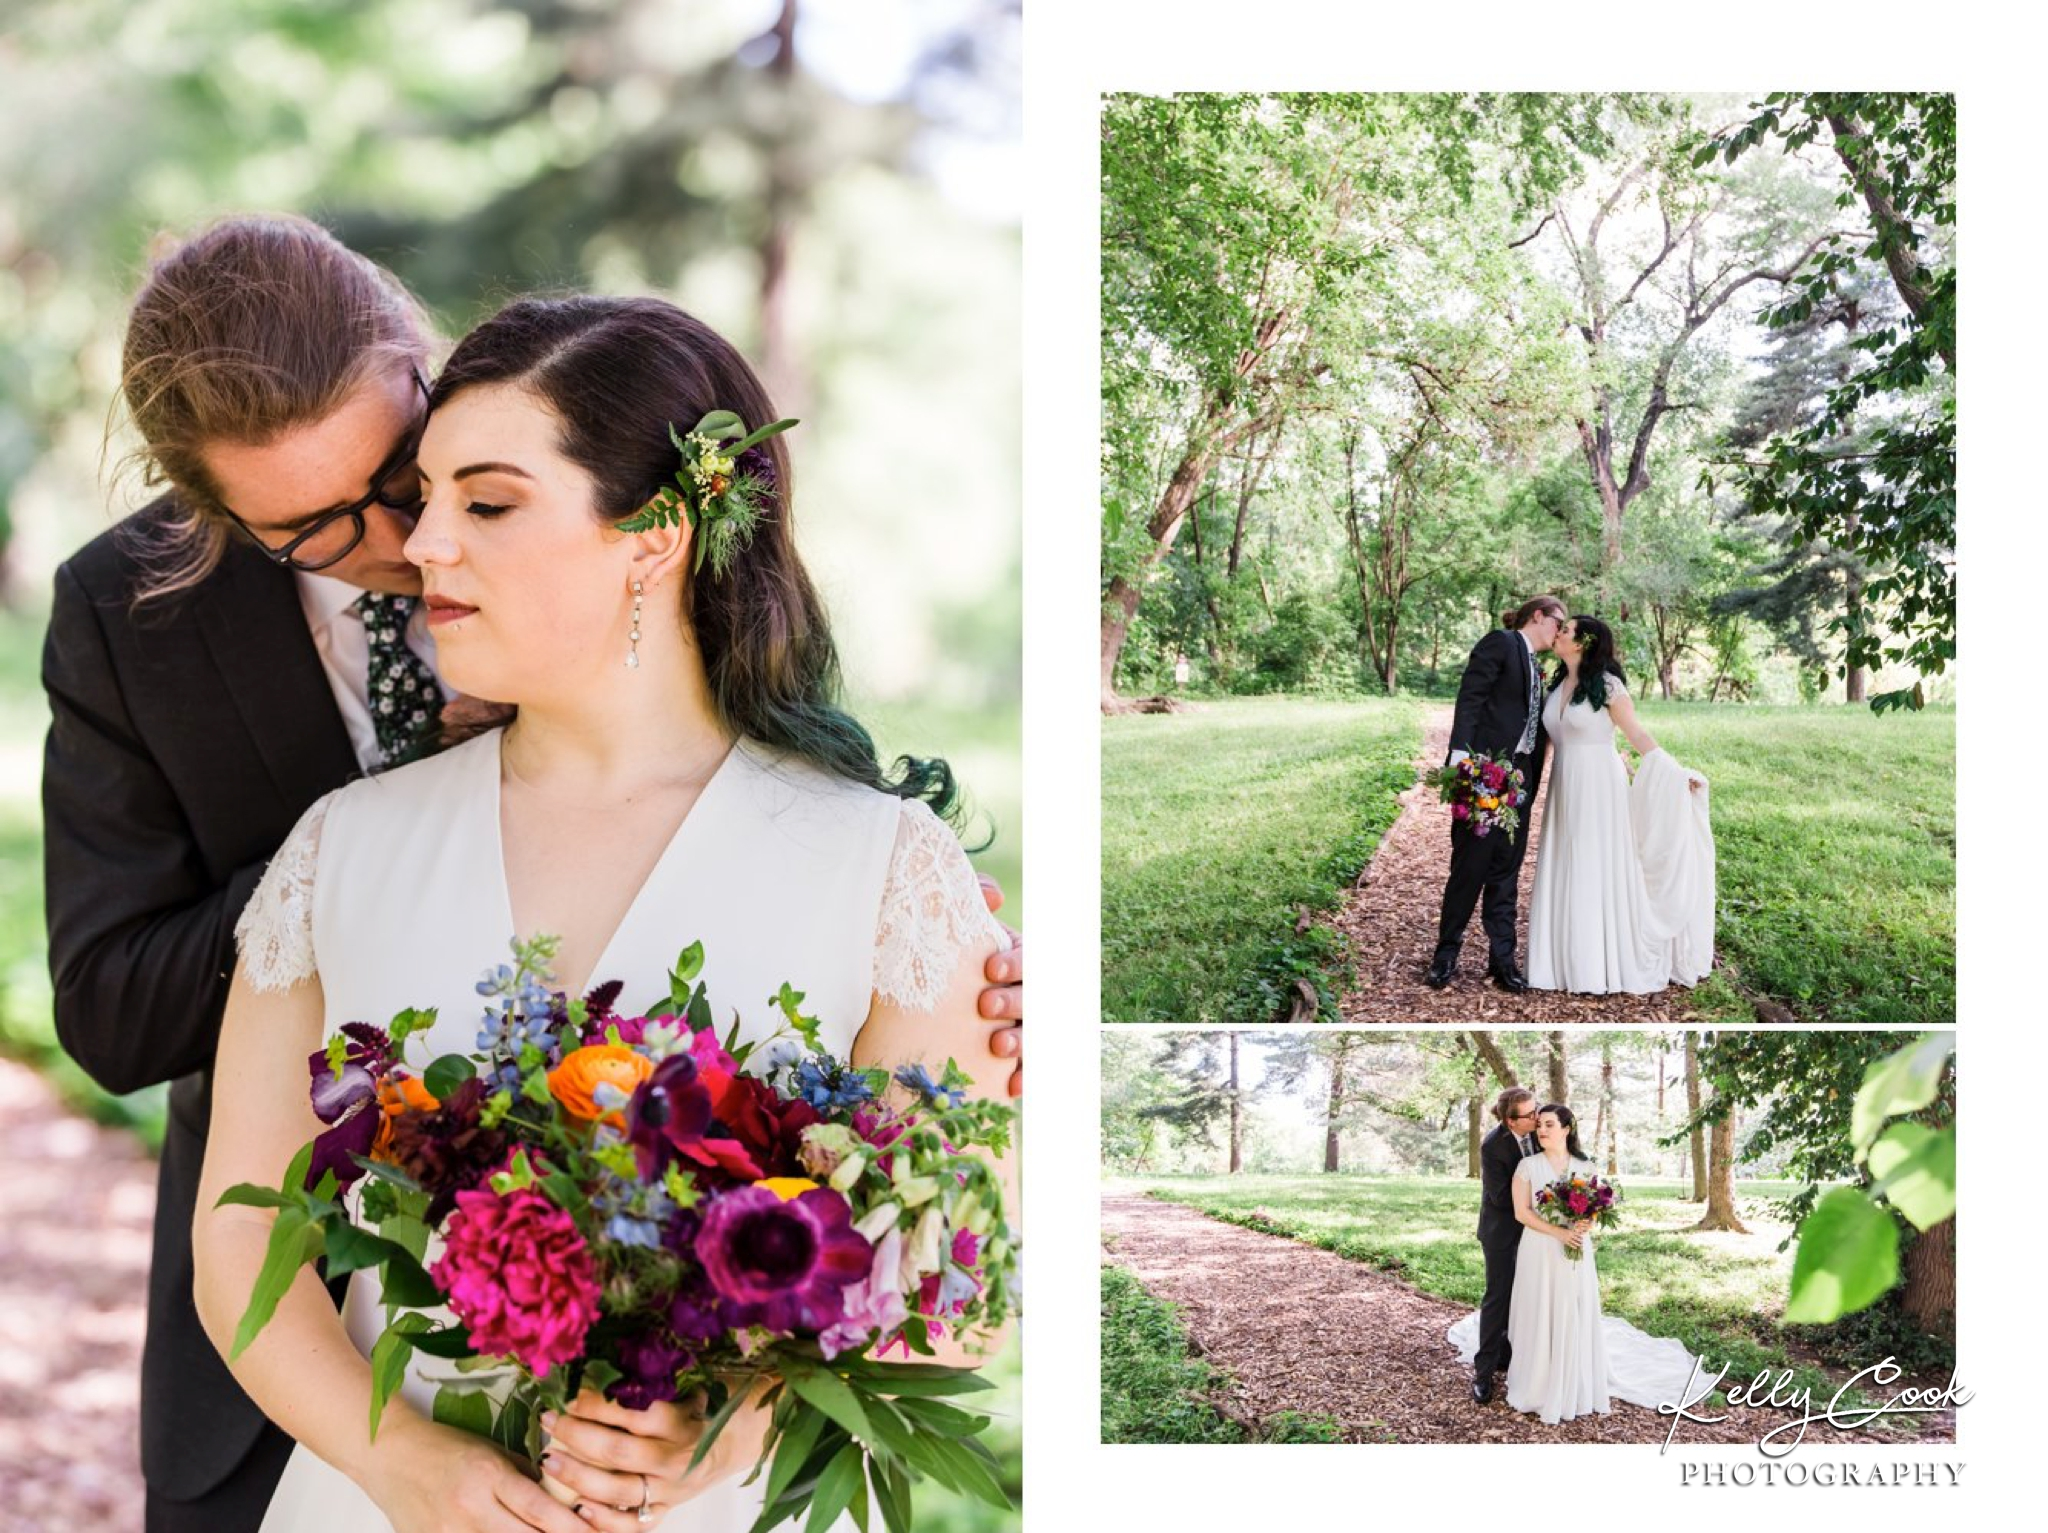 Candid wedding photos of a bride and groom in Tower Grove Park in St. Louis